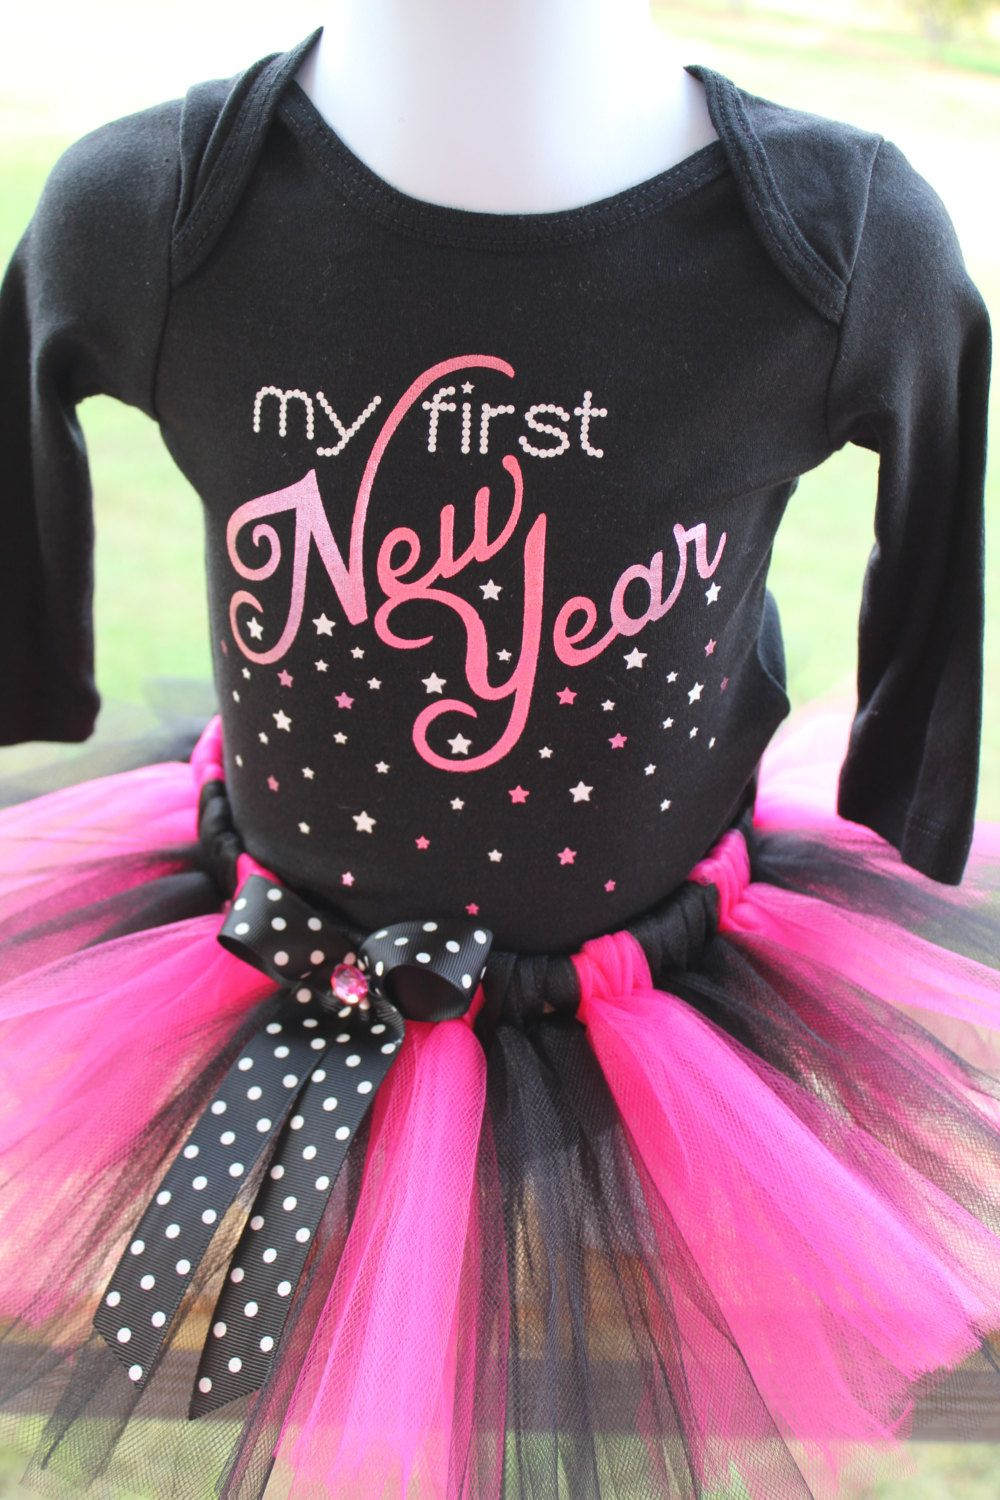 My First New Year Onesie bodysuit tutu dress combo by